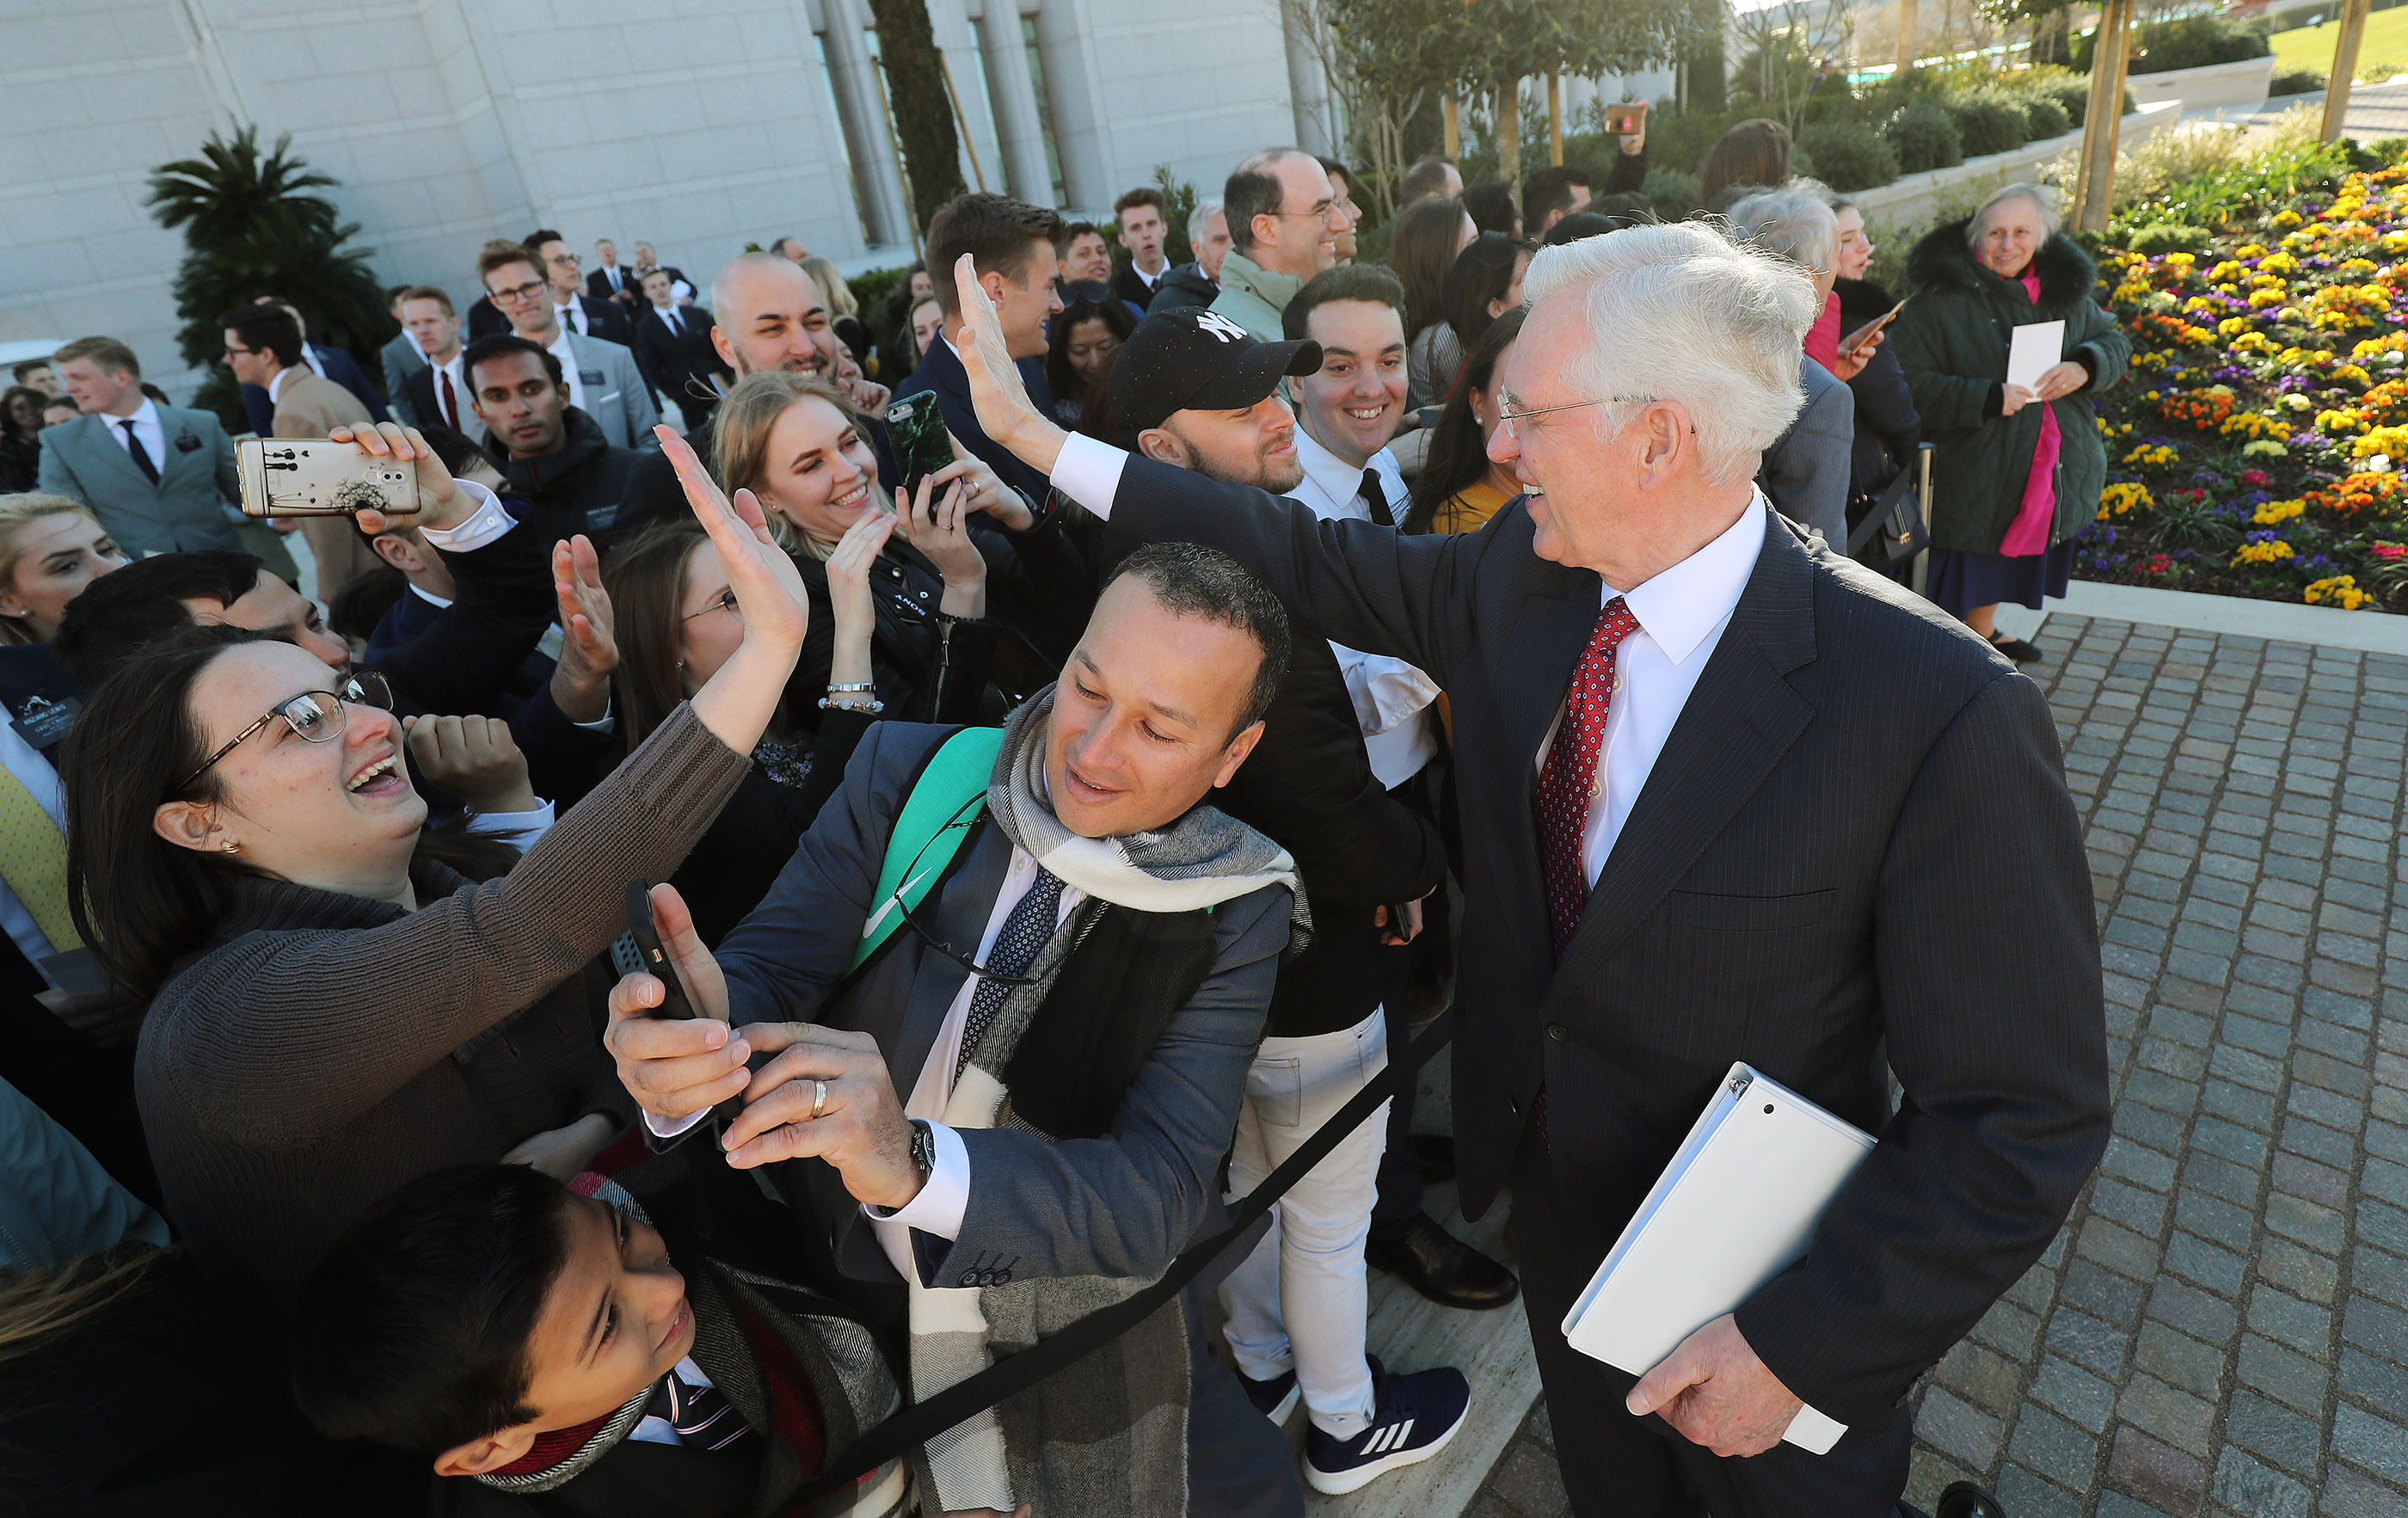 Elder D. Todd Christofferson, of the Quorum of the Twelve Apostles of The Church of Jesus Christ of Latter-day Saints, high-fives temple attendees in Rome, Italy, on Tuesday, March 12, 2019.